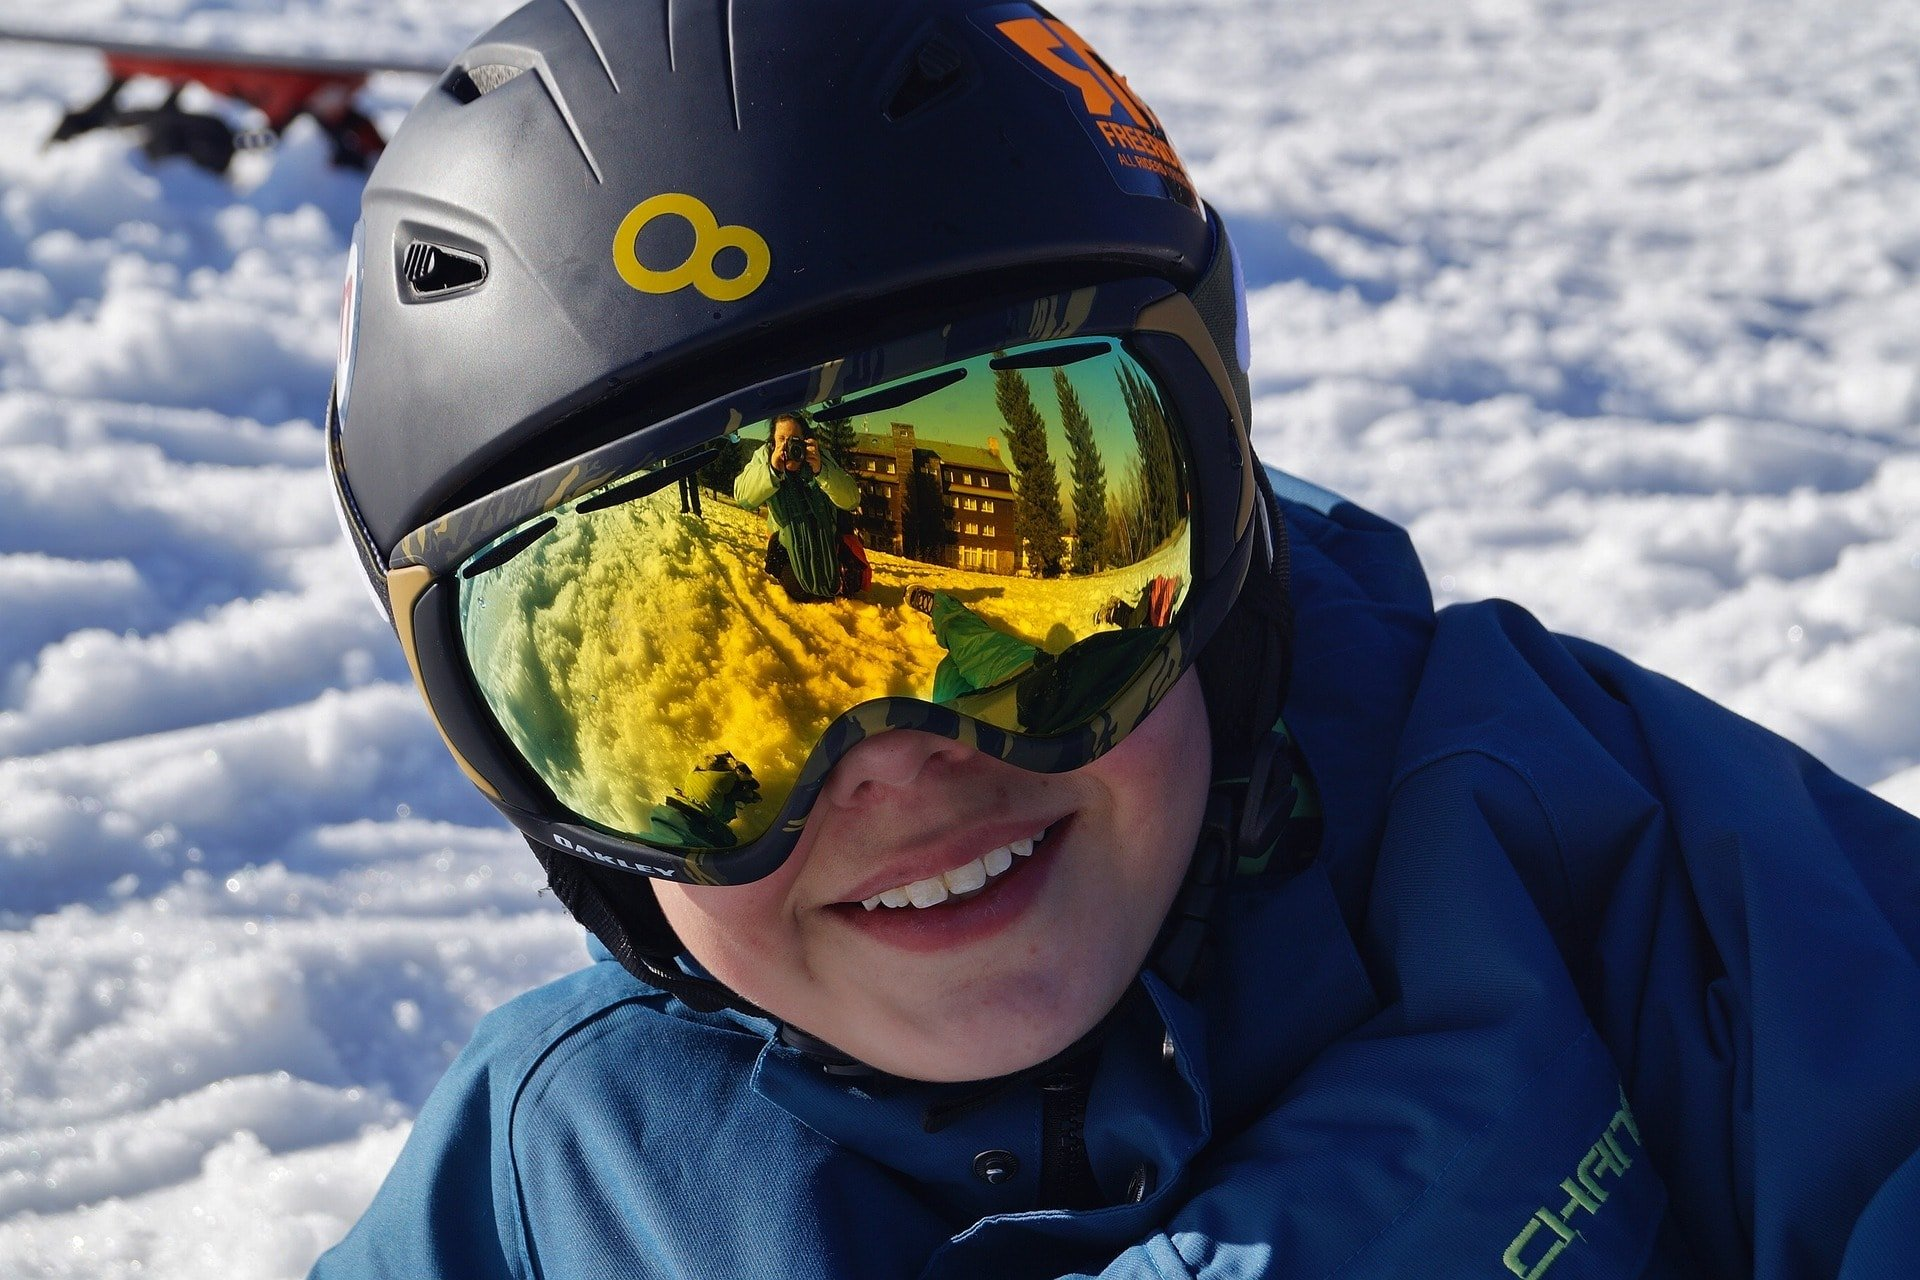 Are ski helmets compulsory in France?